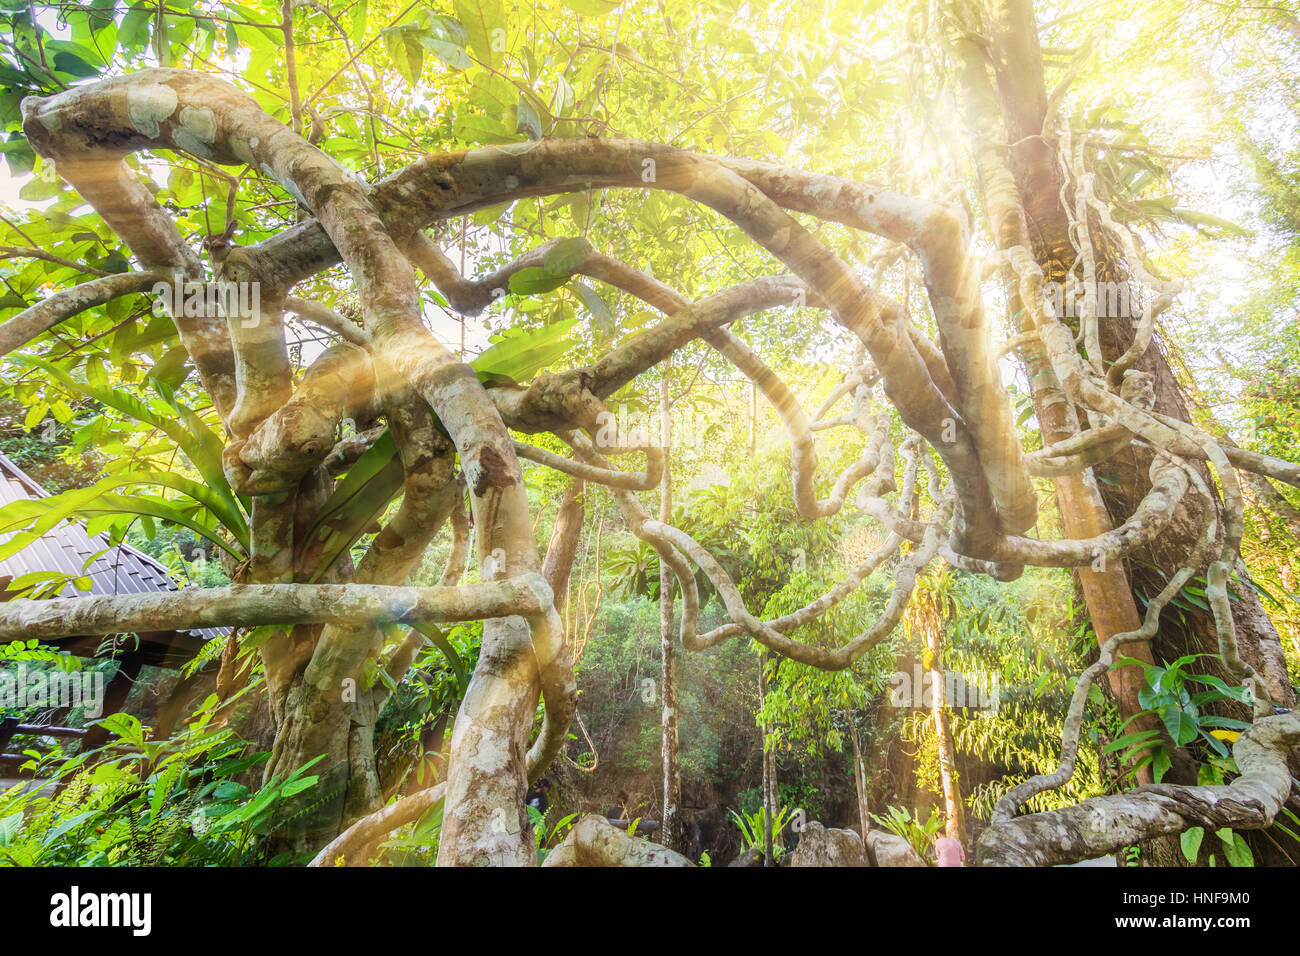 Sunrise with vine tree in forest - Stock Image